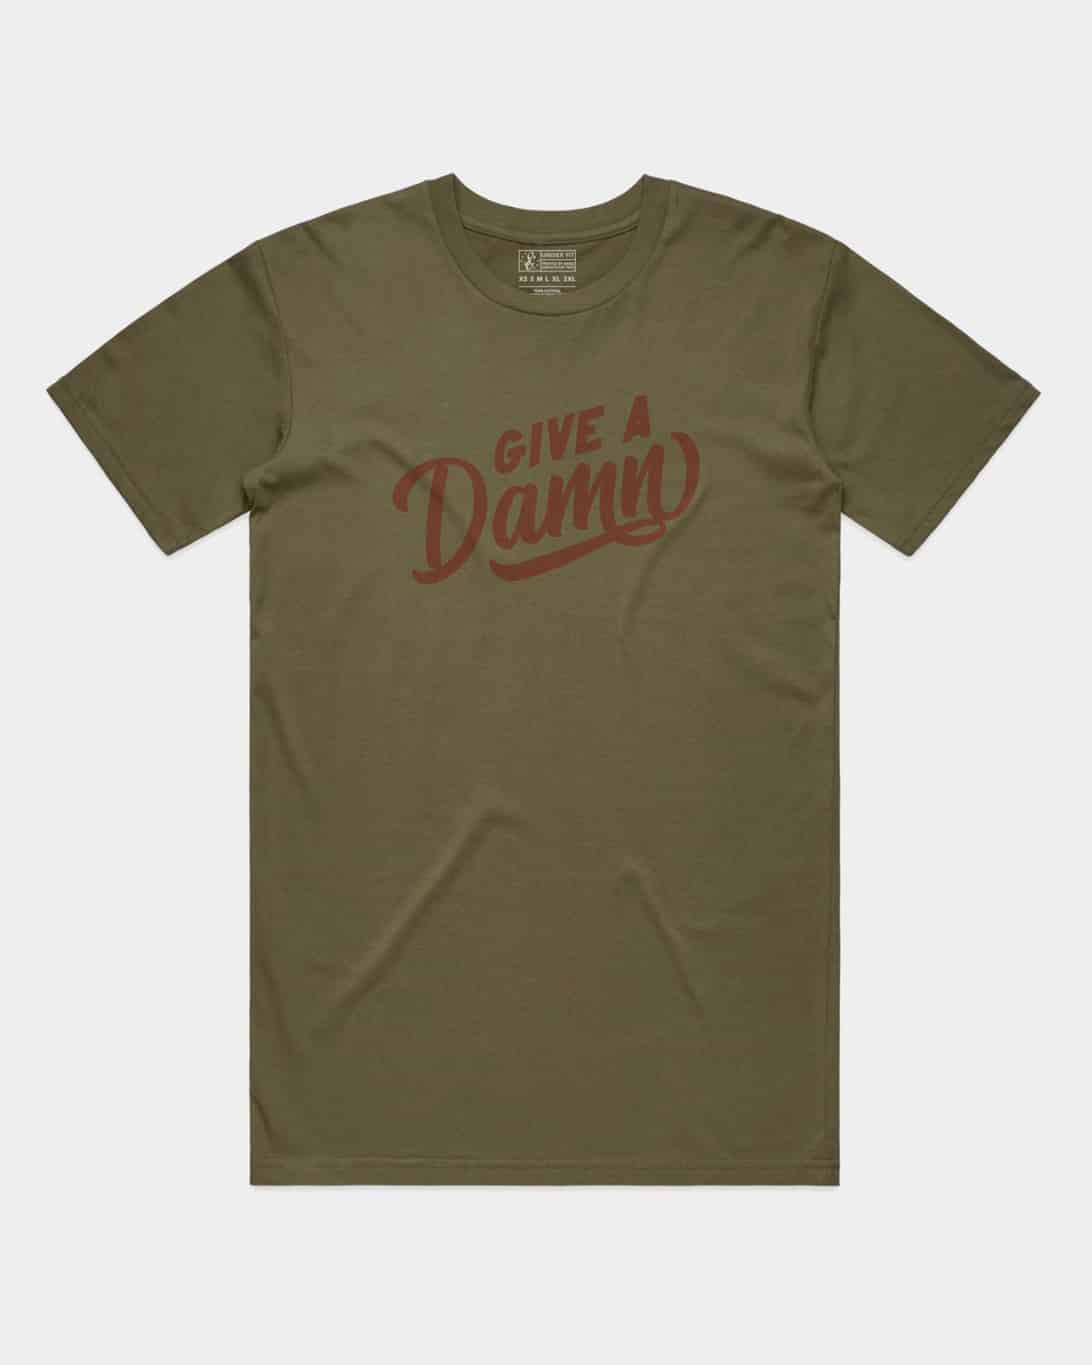 Army green shirt that says give a damn in red ink